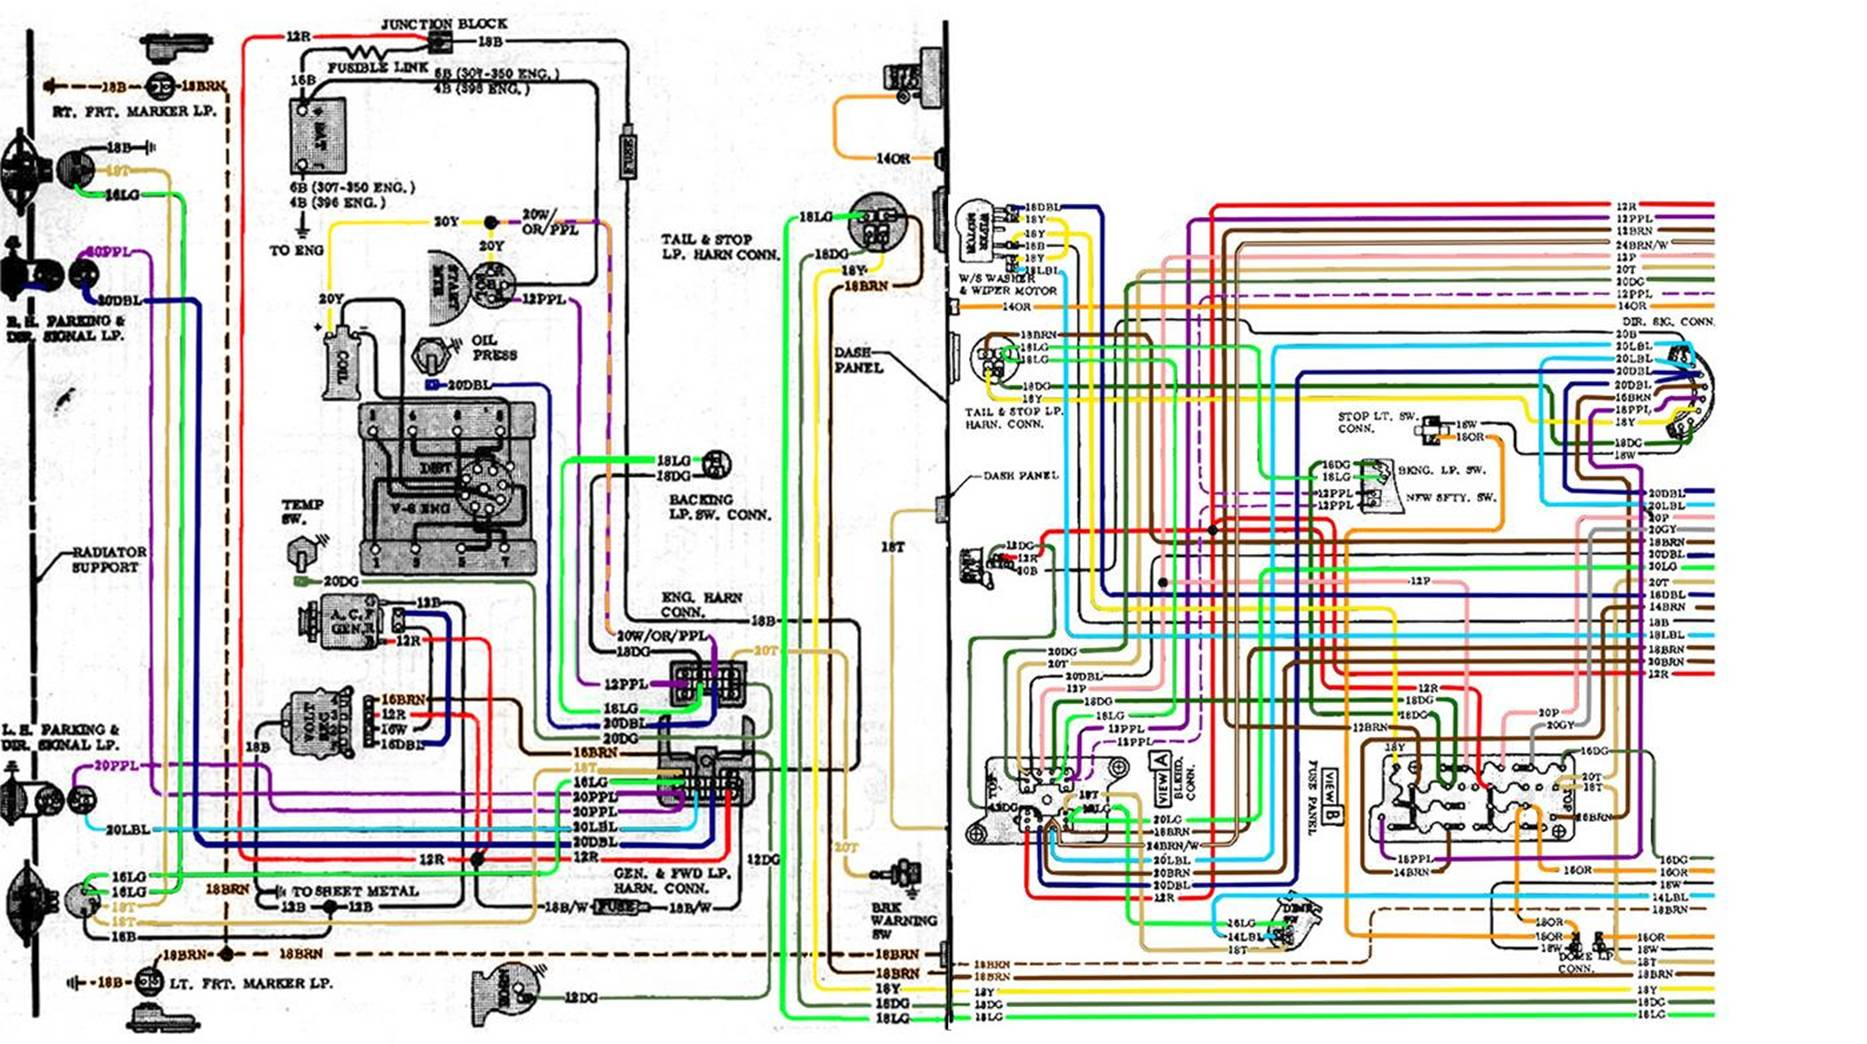 1970 Chevelle Turn Signal Wiring Diagram Library 2002 F350 1968 Chevy Truck Schematic Rh Asparklingjourney Com 1967 Diagrams Online